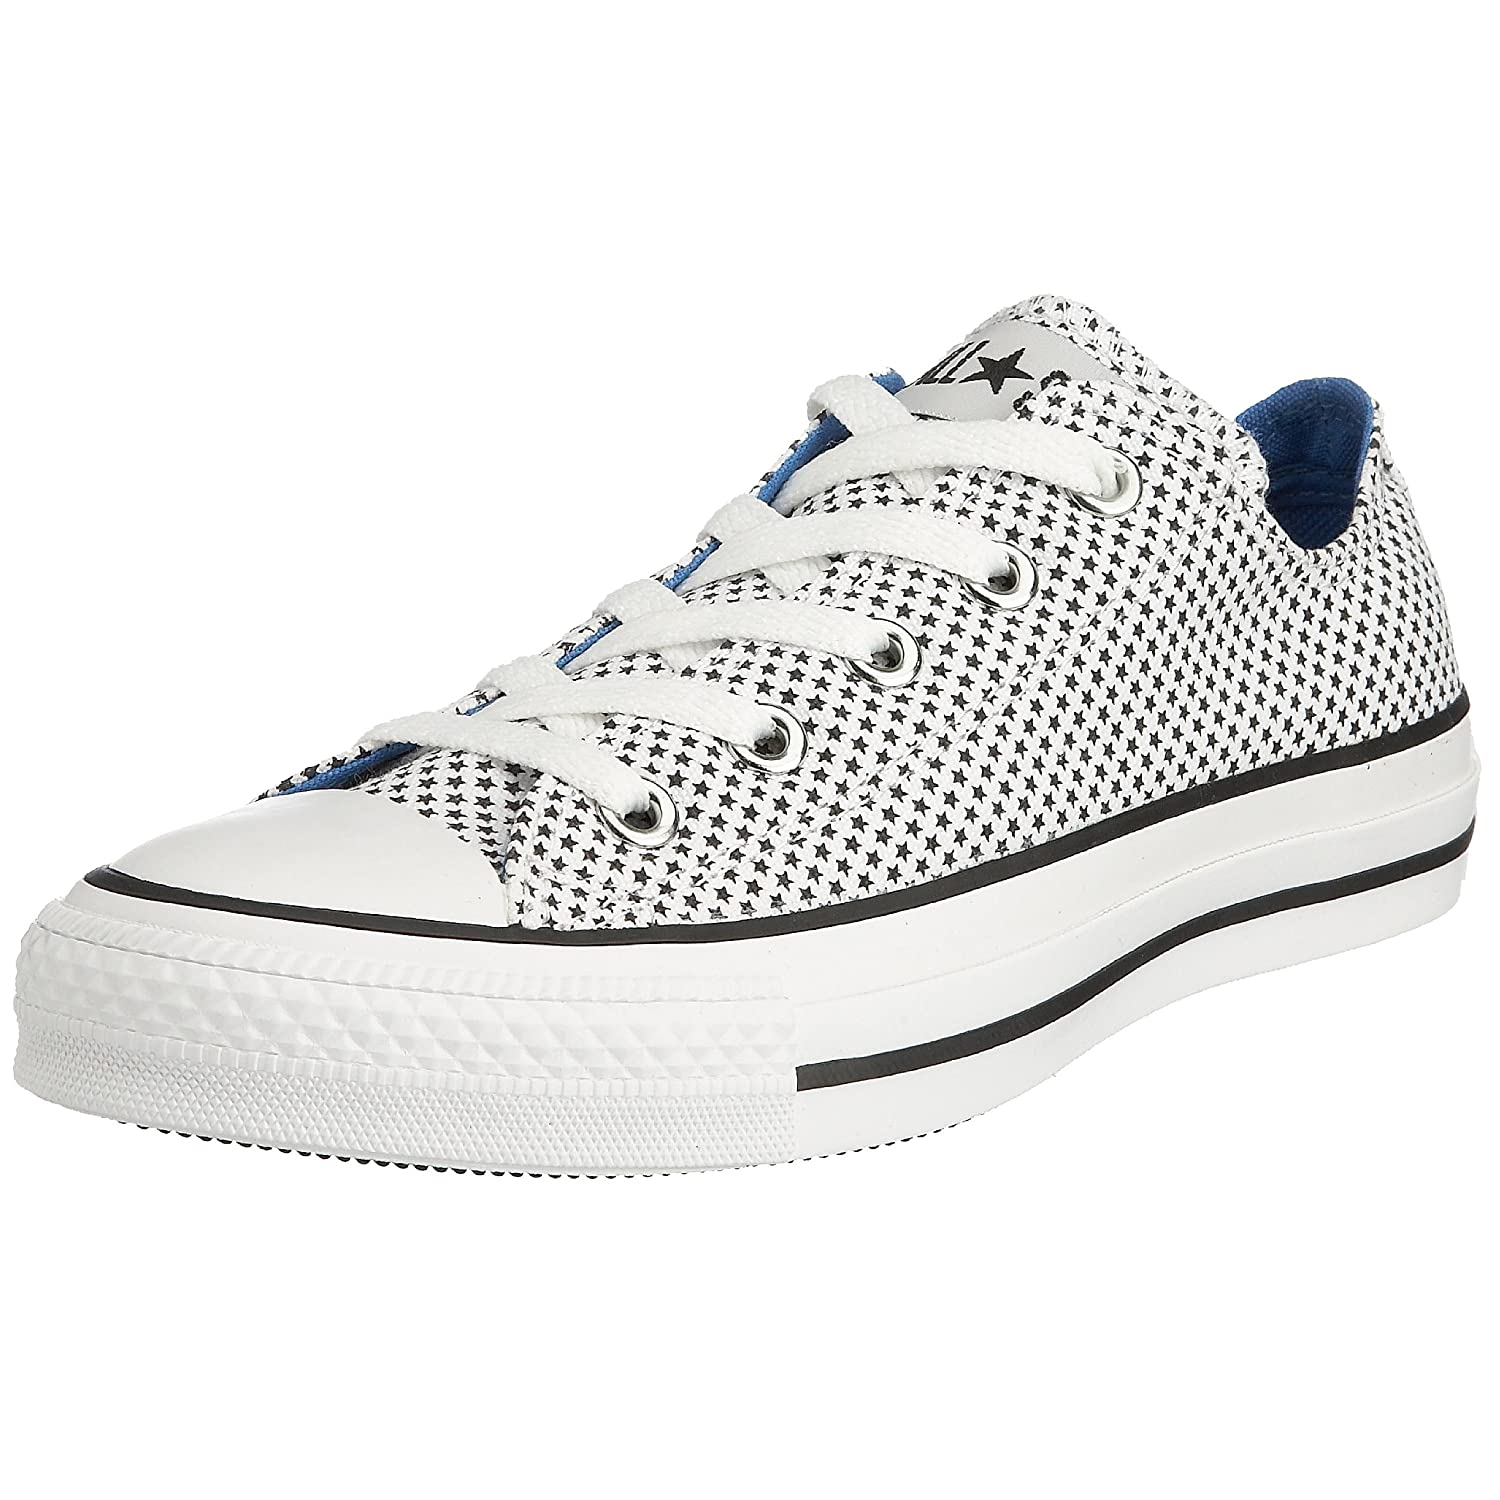 Converse Chuck Taylor All Star Core, Baskets Taylor Mixte Adulte Converse B078T4PP5B Multicolore 59098e6 - fast-weightloss-diet.space